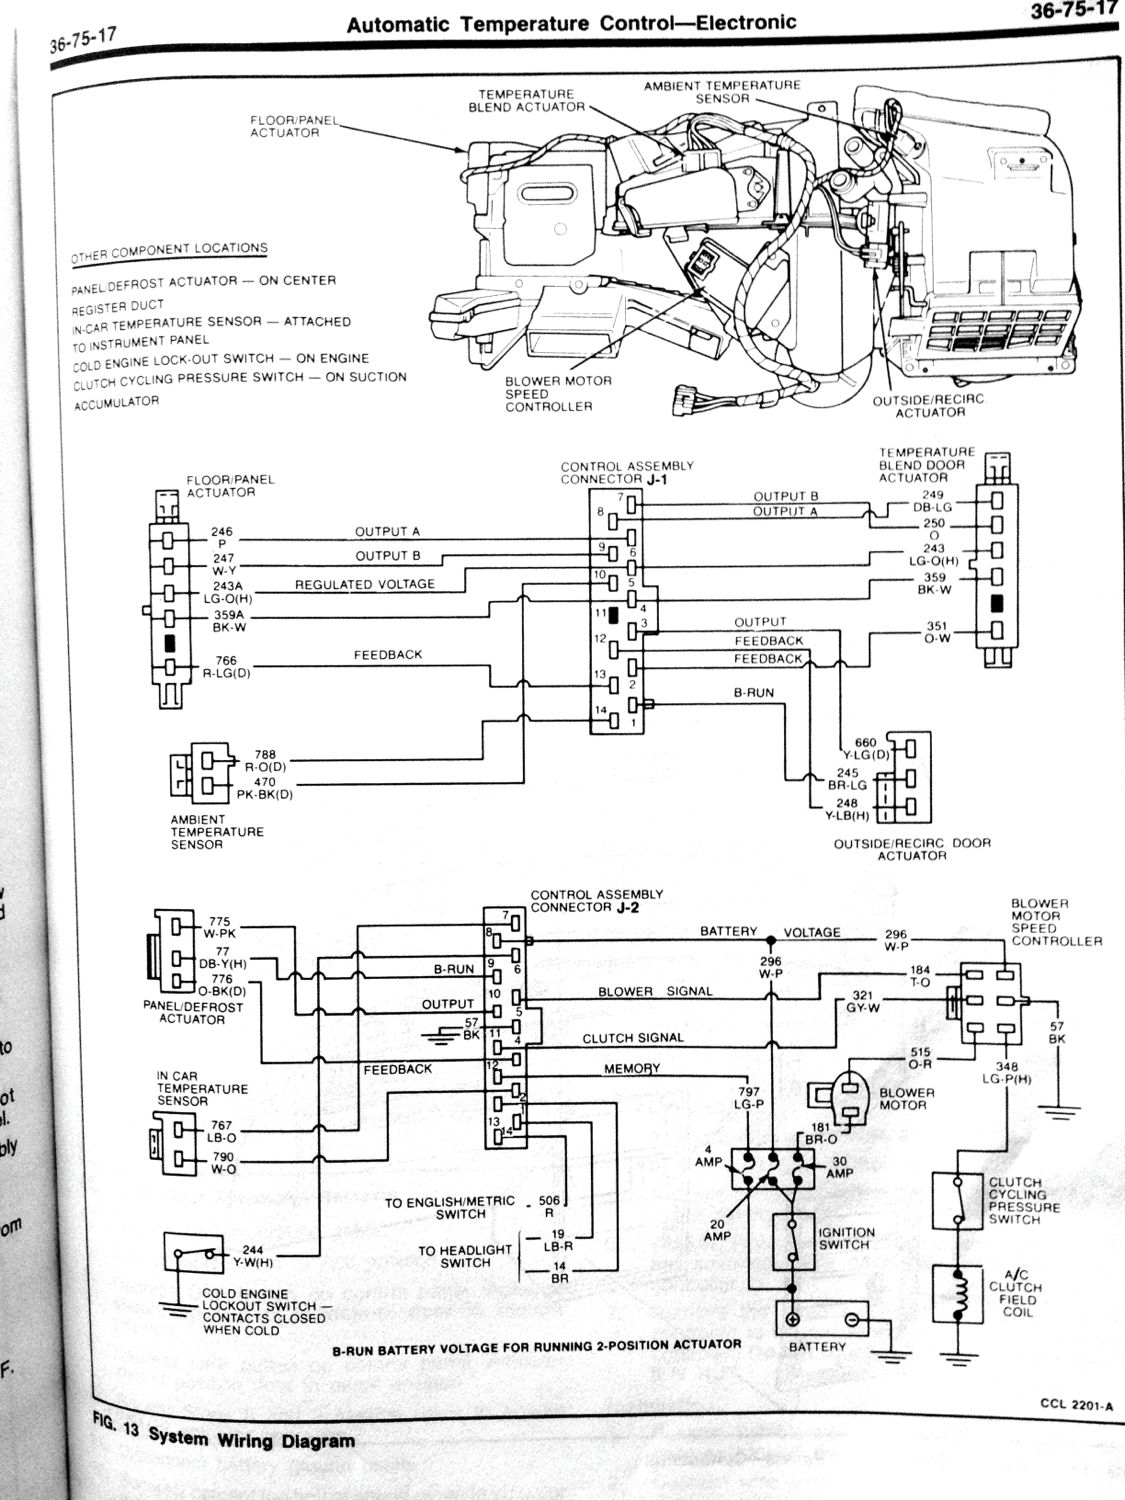 service manual  1984 lincoln mark vii valve wiring